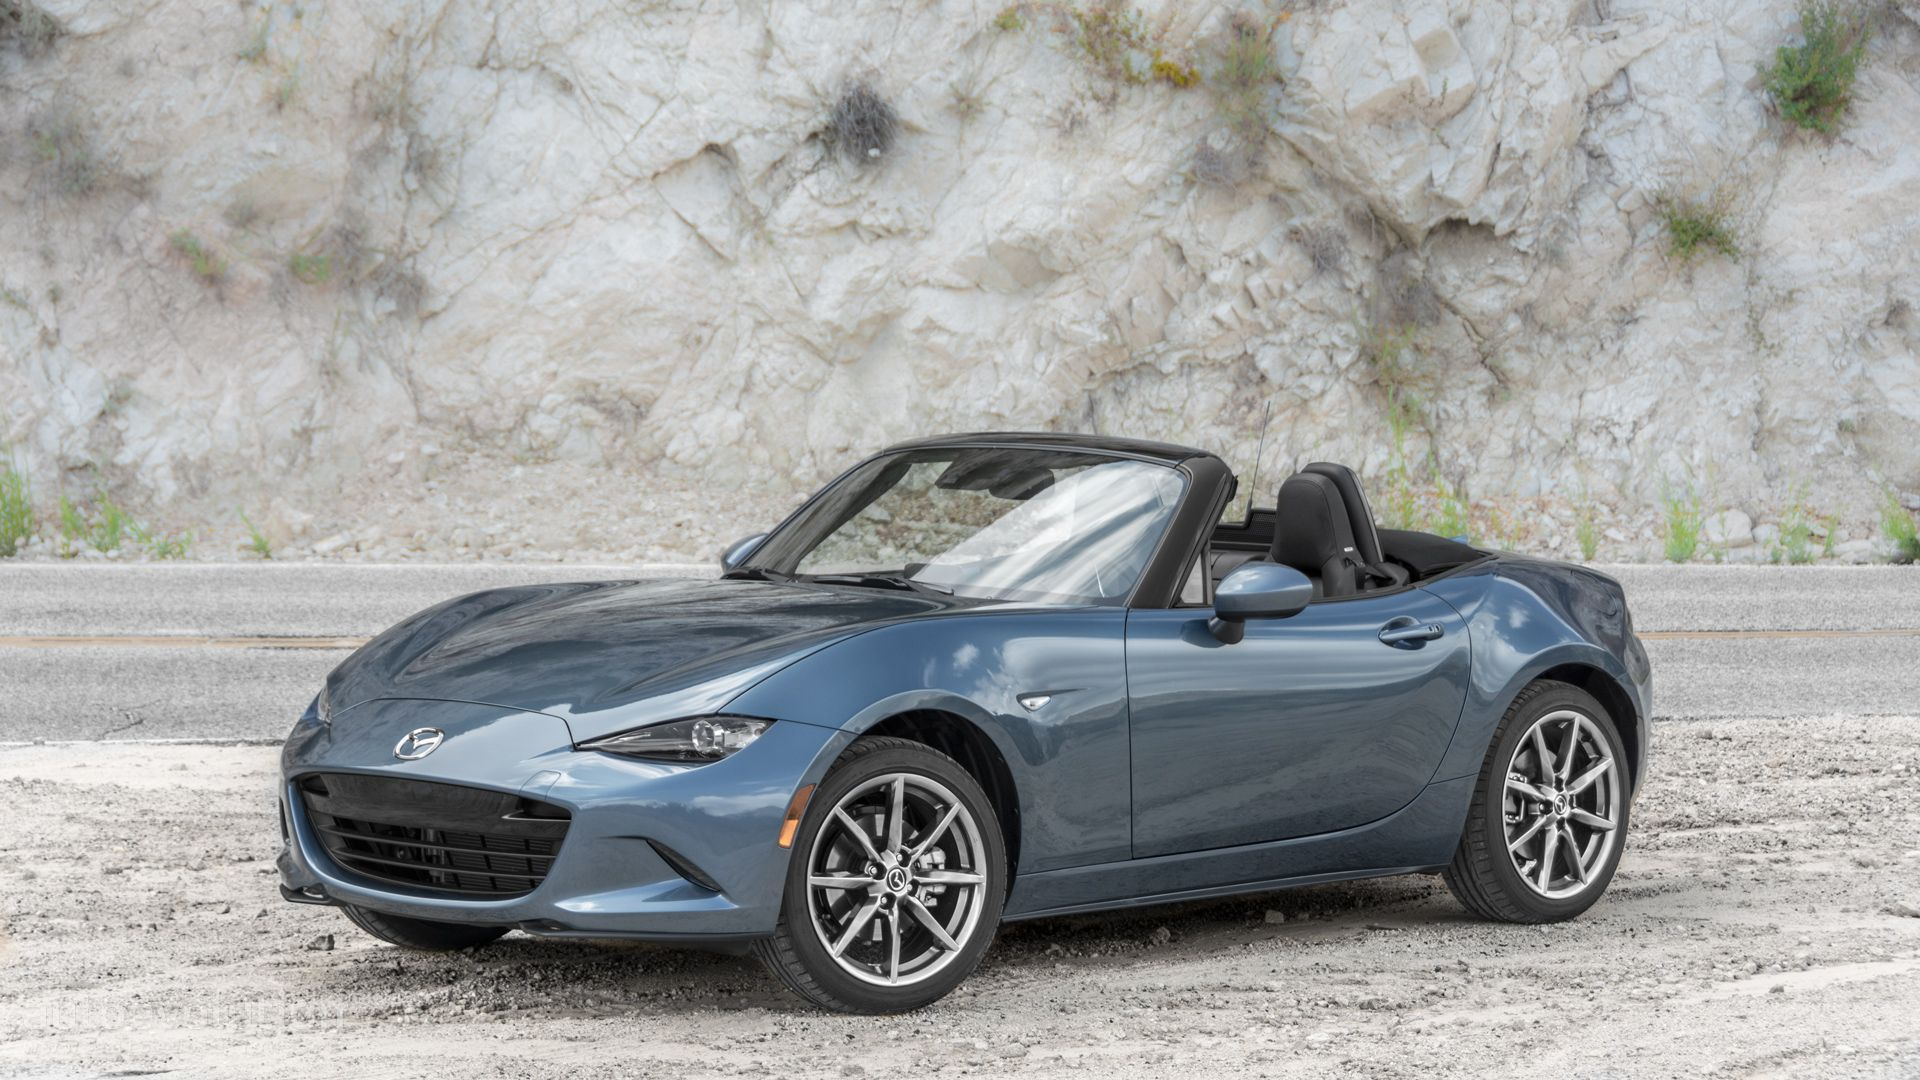 2016 Mazda Miata Mx 5 Tested Back To Basics Autoevolution